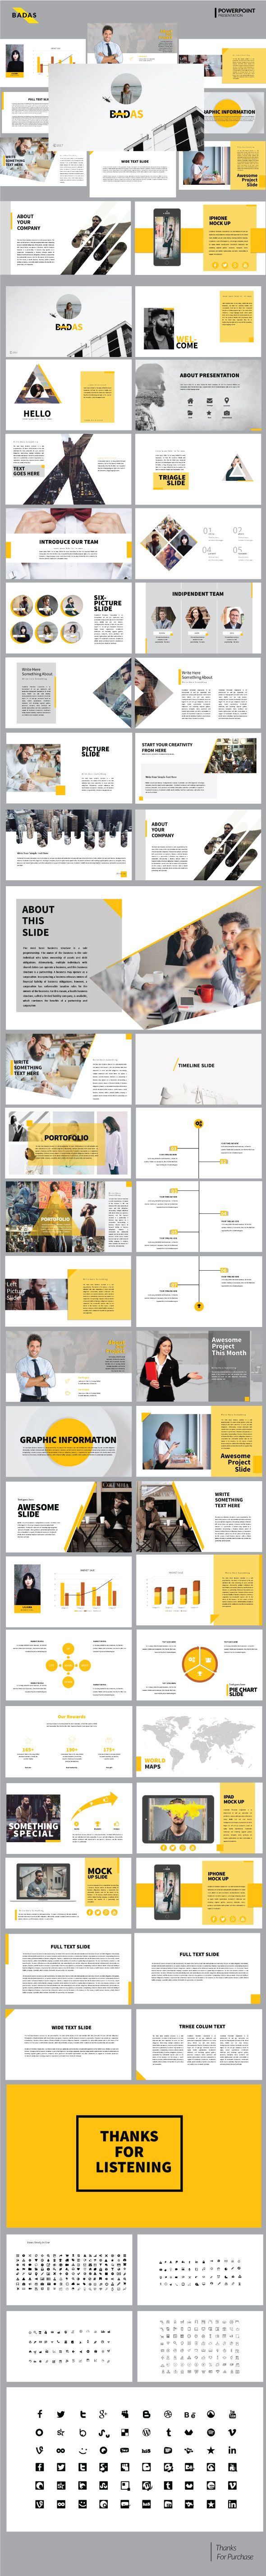 Badas - Creative Multipurpose Presentation Templates - PowerPoint Templates Presentation Templates, #PowerPoint #Templates  Download here:  https://graphicriver.net/item/badas-creative-multipurpose-presentation-templates/20420094?ref=alena994